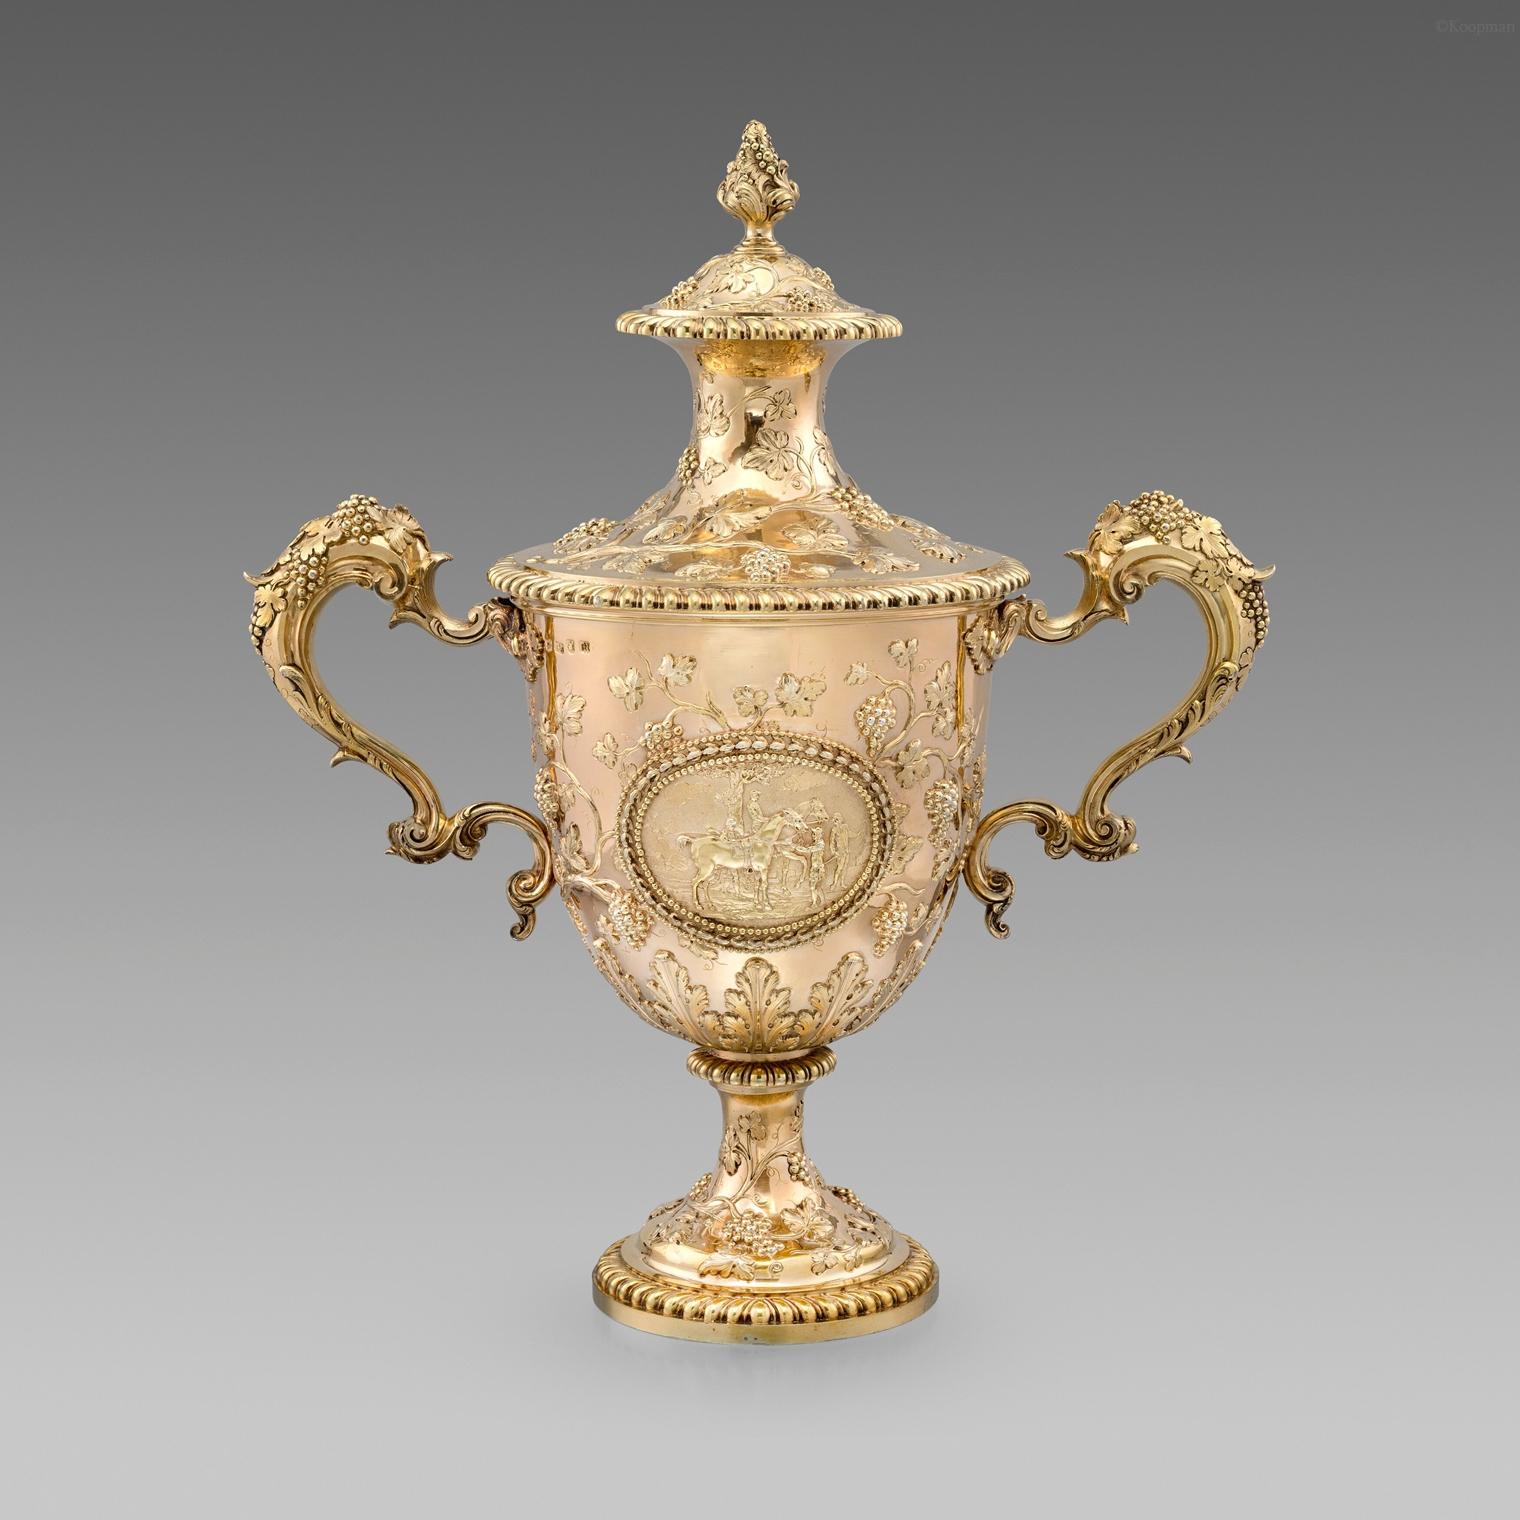 The 'Doncaster Cup': A George III Equestrian Trophy